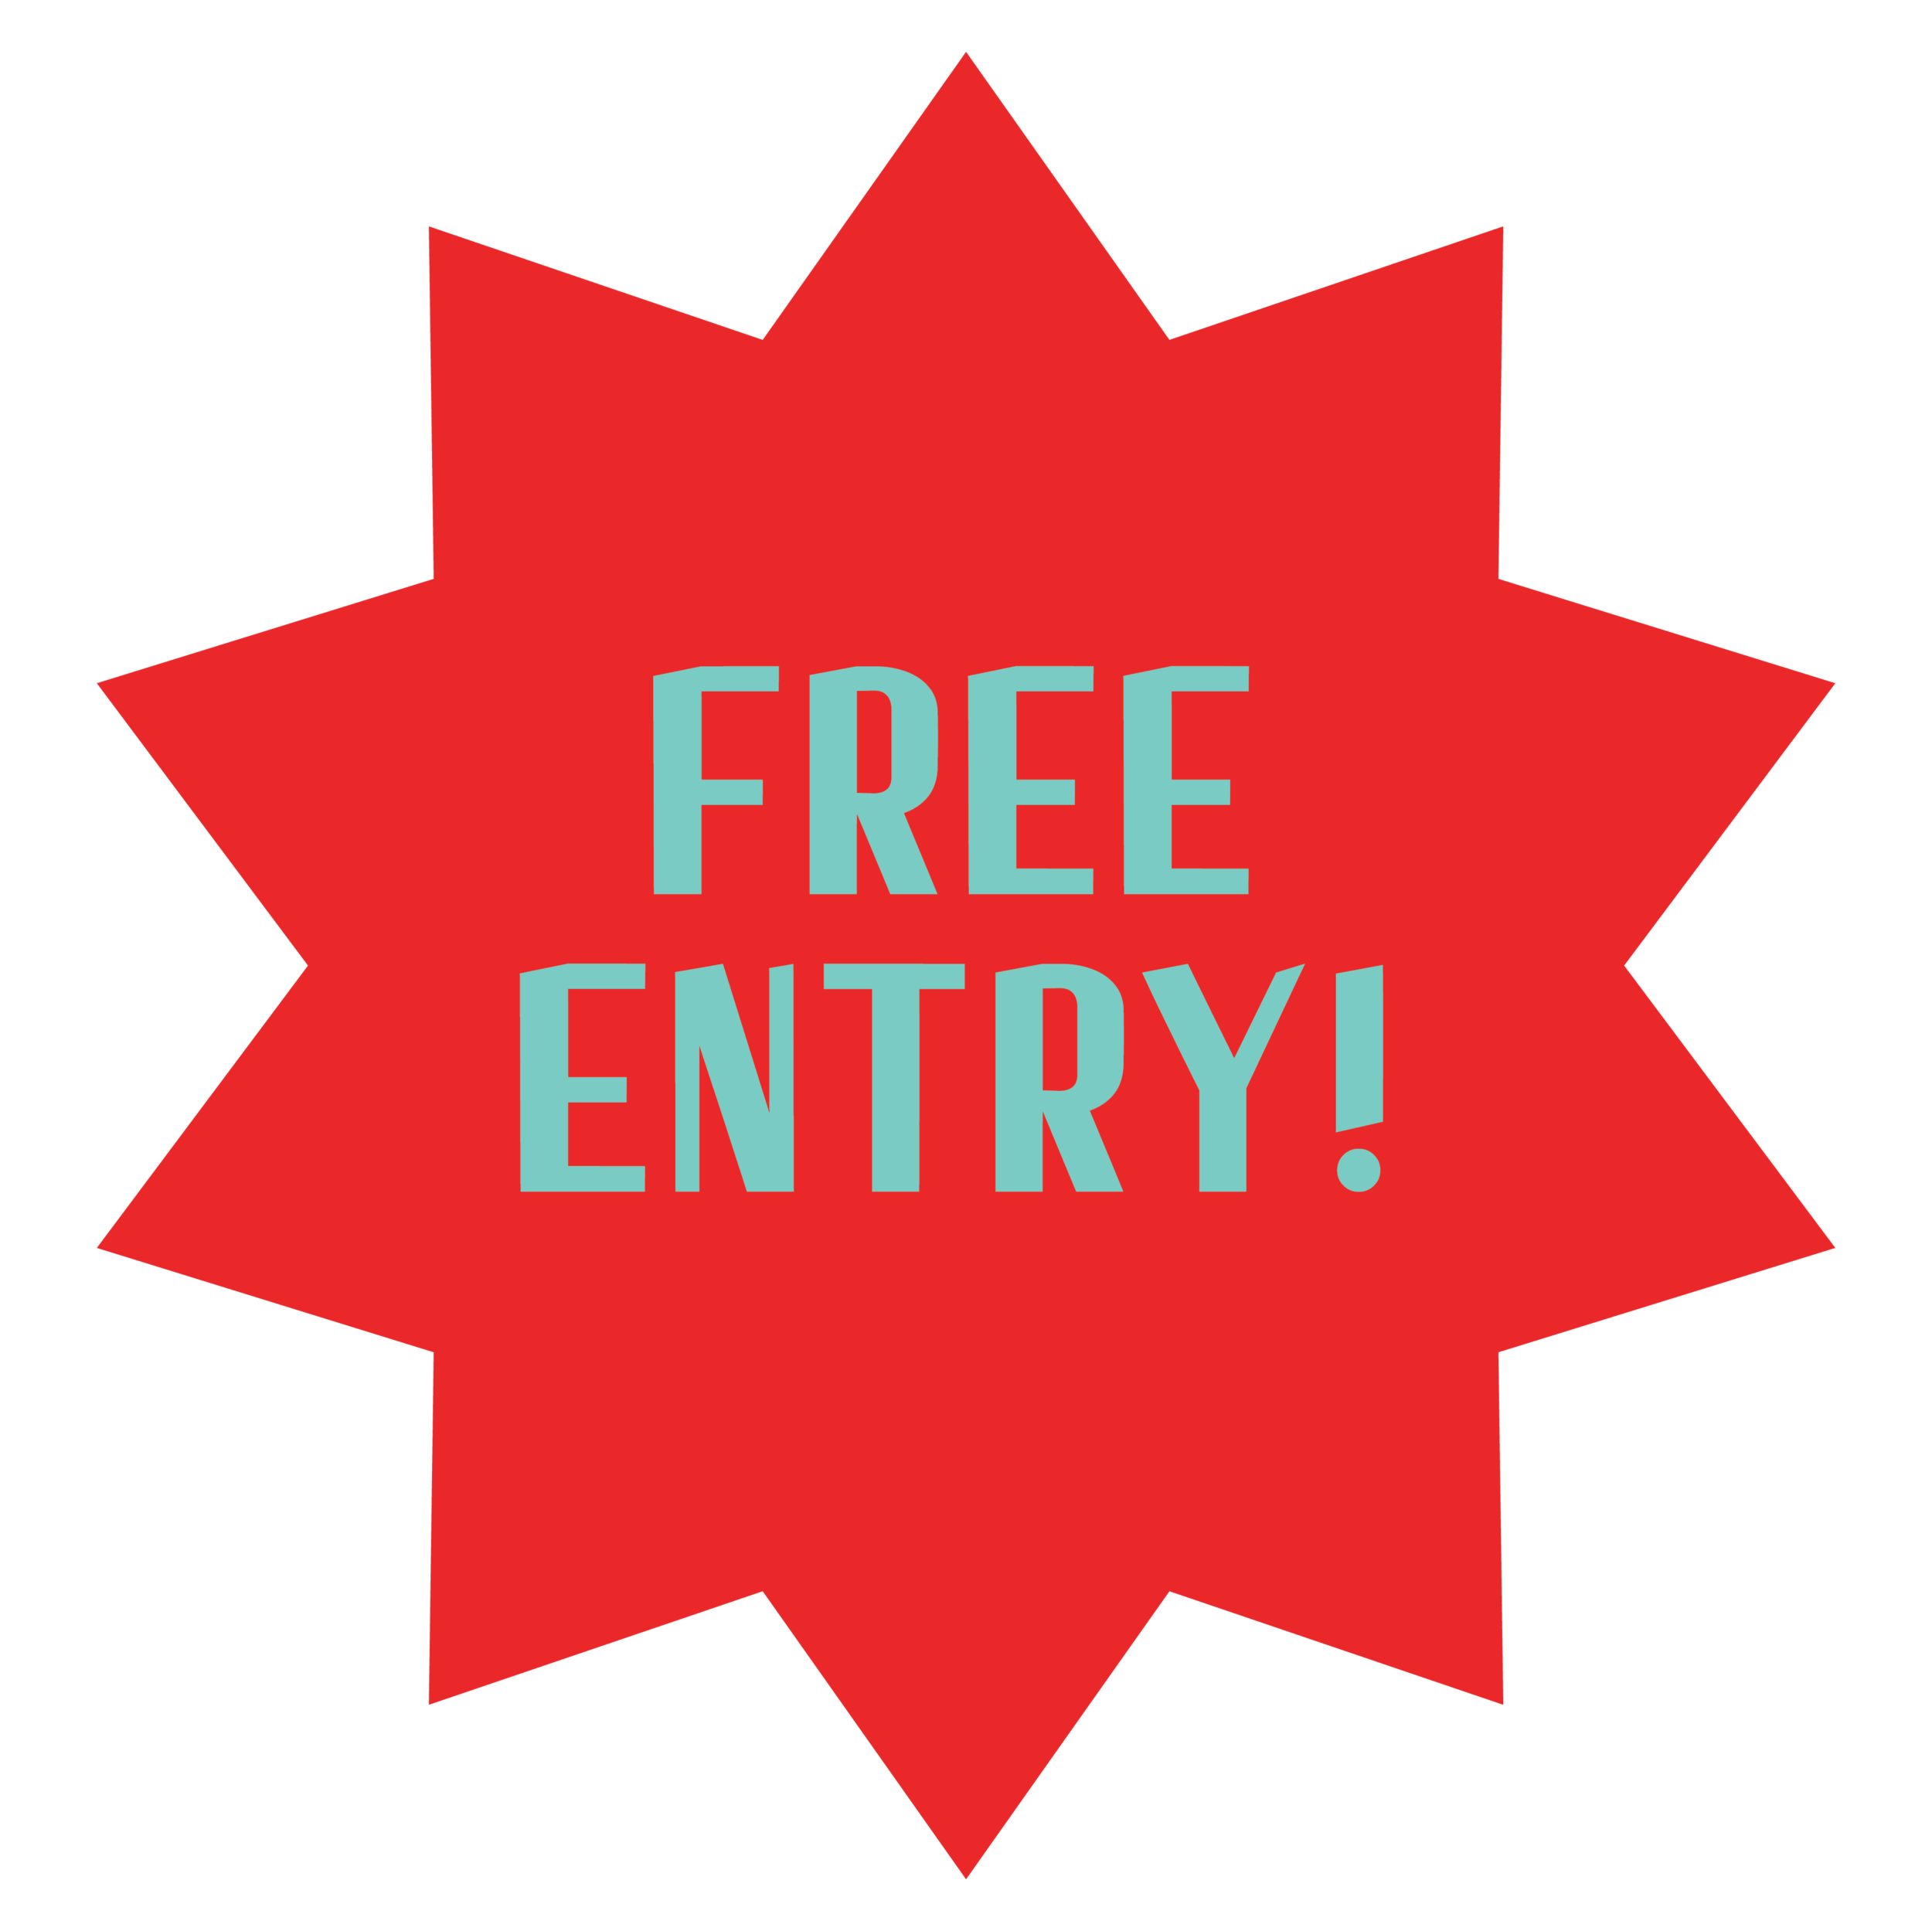 free entry text.png